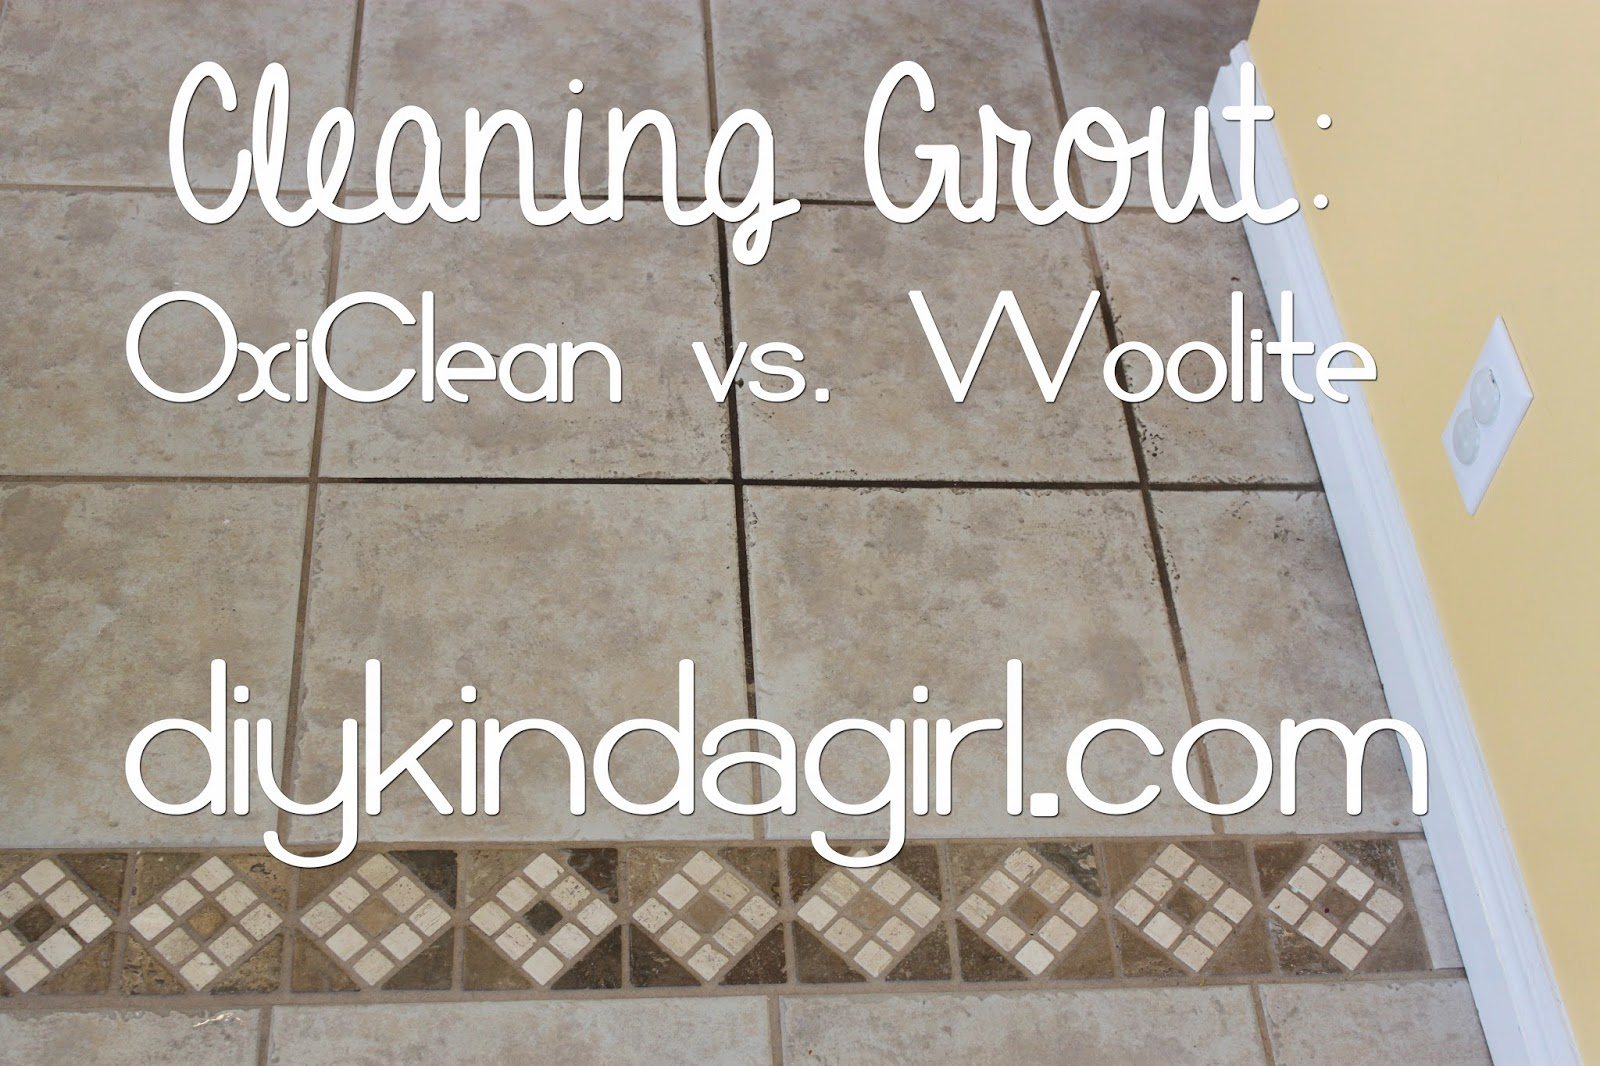 Diy kinda girl diy household tip cleaning grout oxiclean vs diy household tip cleaning grout oxiclean vs woolite doublecrazyfo Image collections